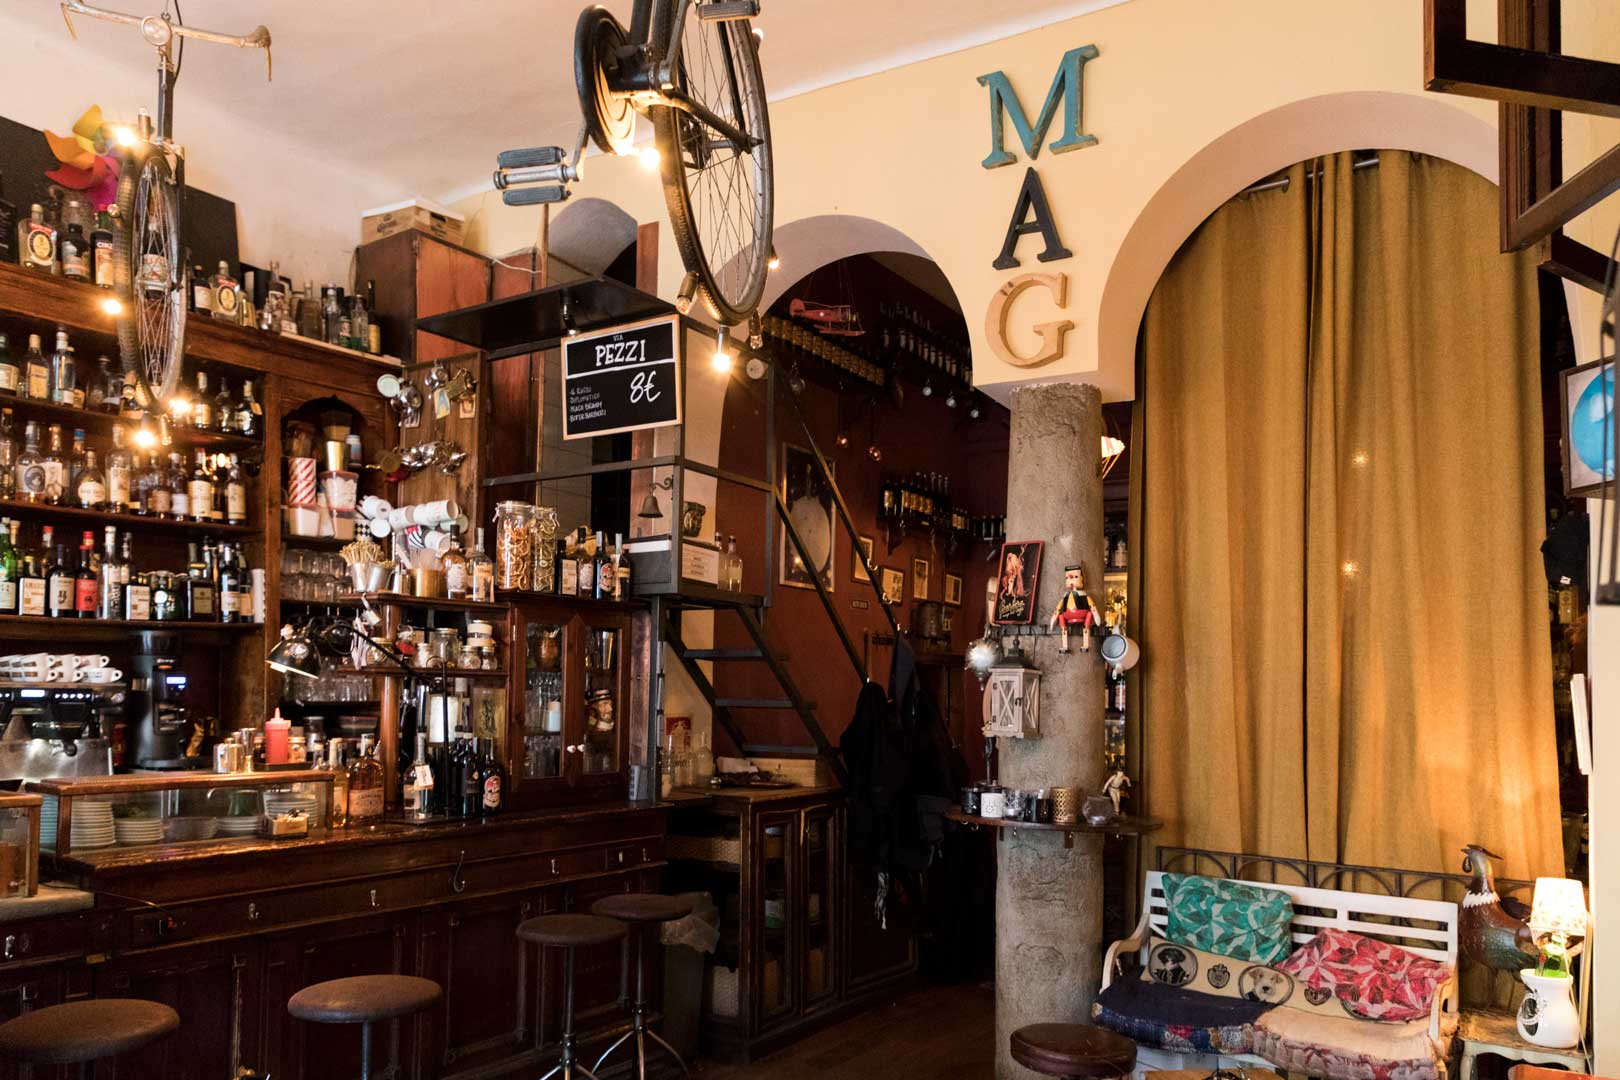 I migliori cocktail bar di quartiere a Milano